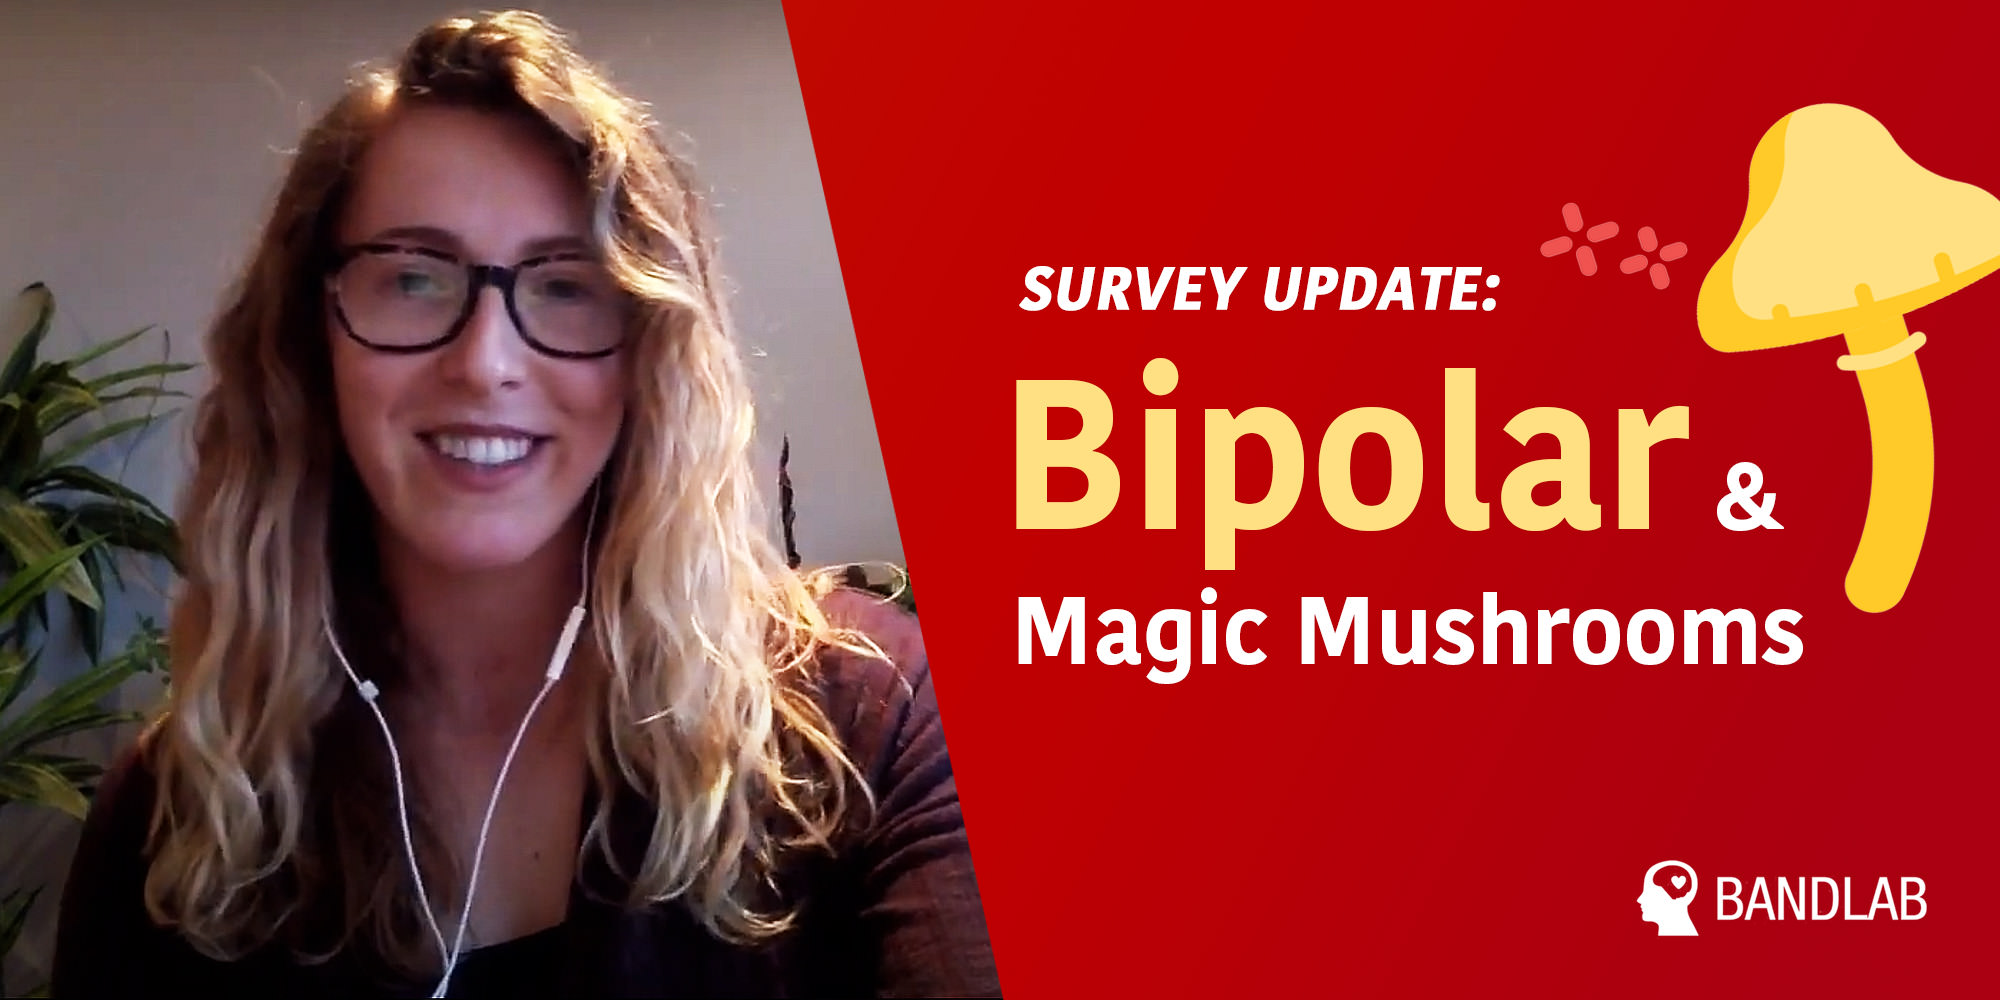 Bipolar Magic Mushrooms Survey: seeking perspectives from BIPOC